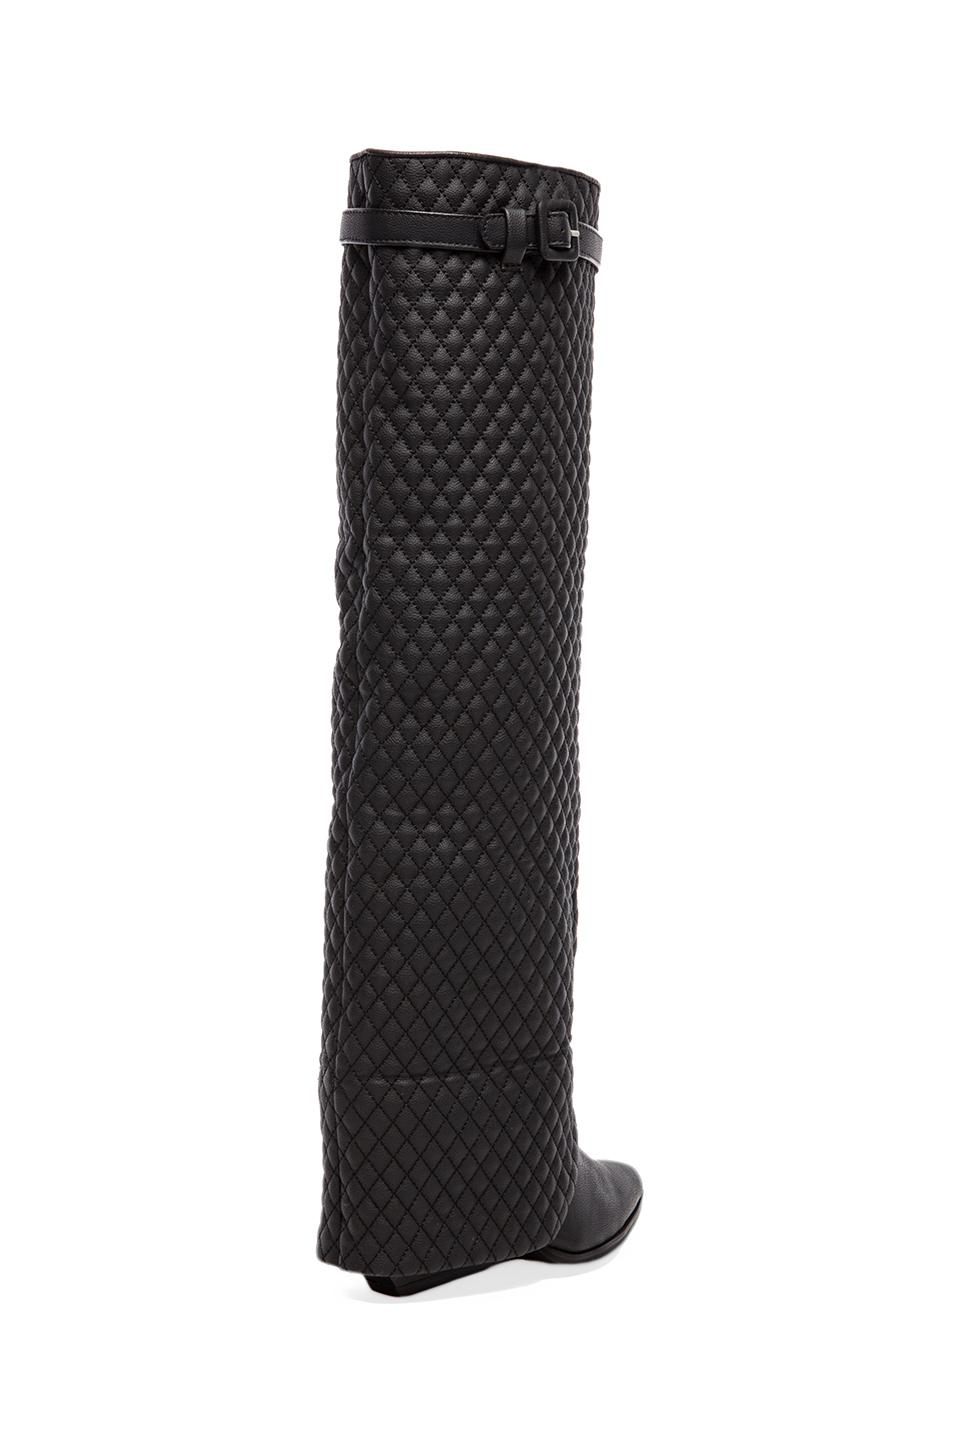 Jeffrey Campbell Workin Q Foldover Boot in Black Quilted